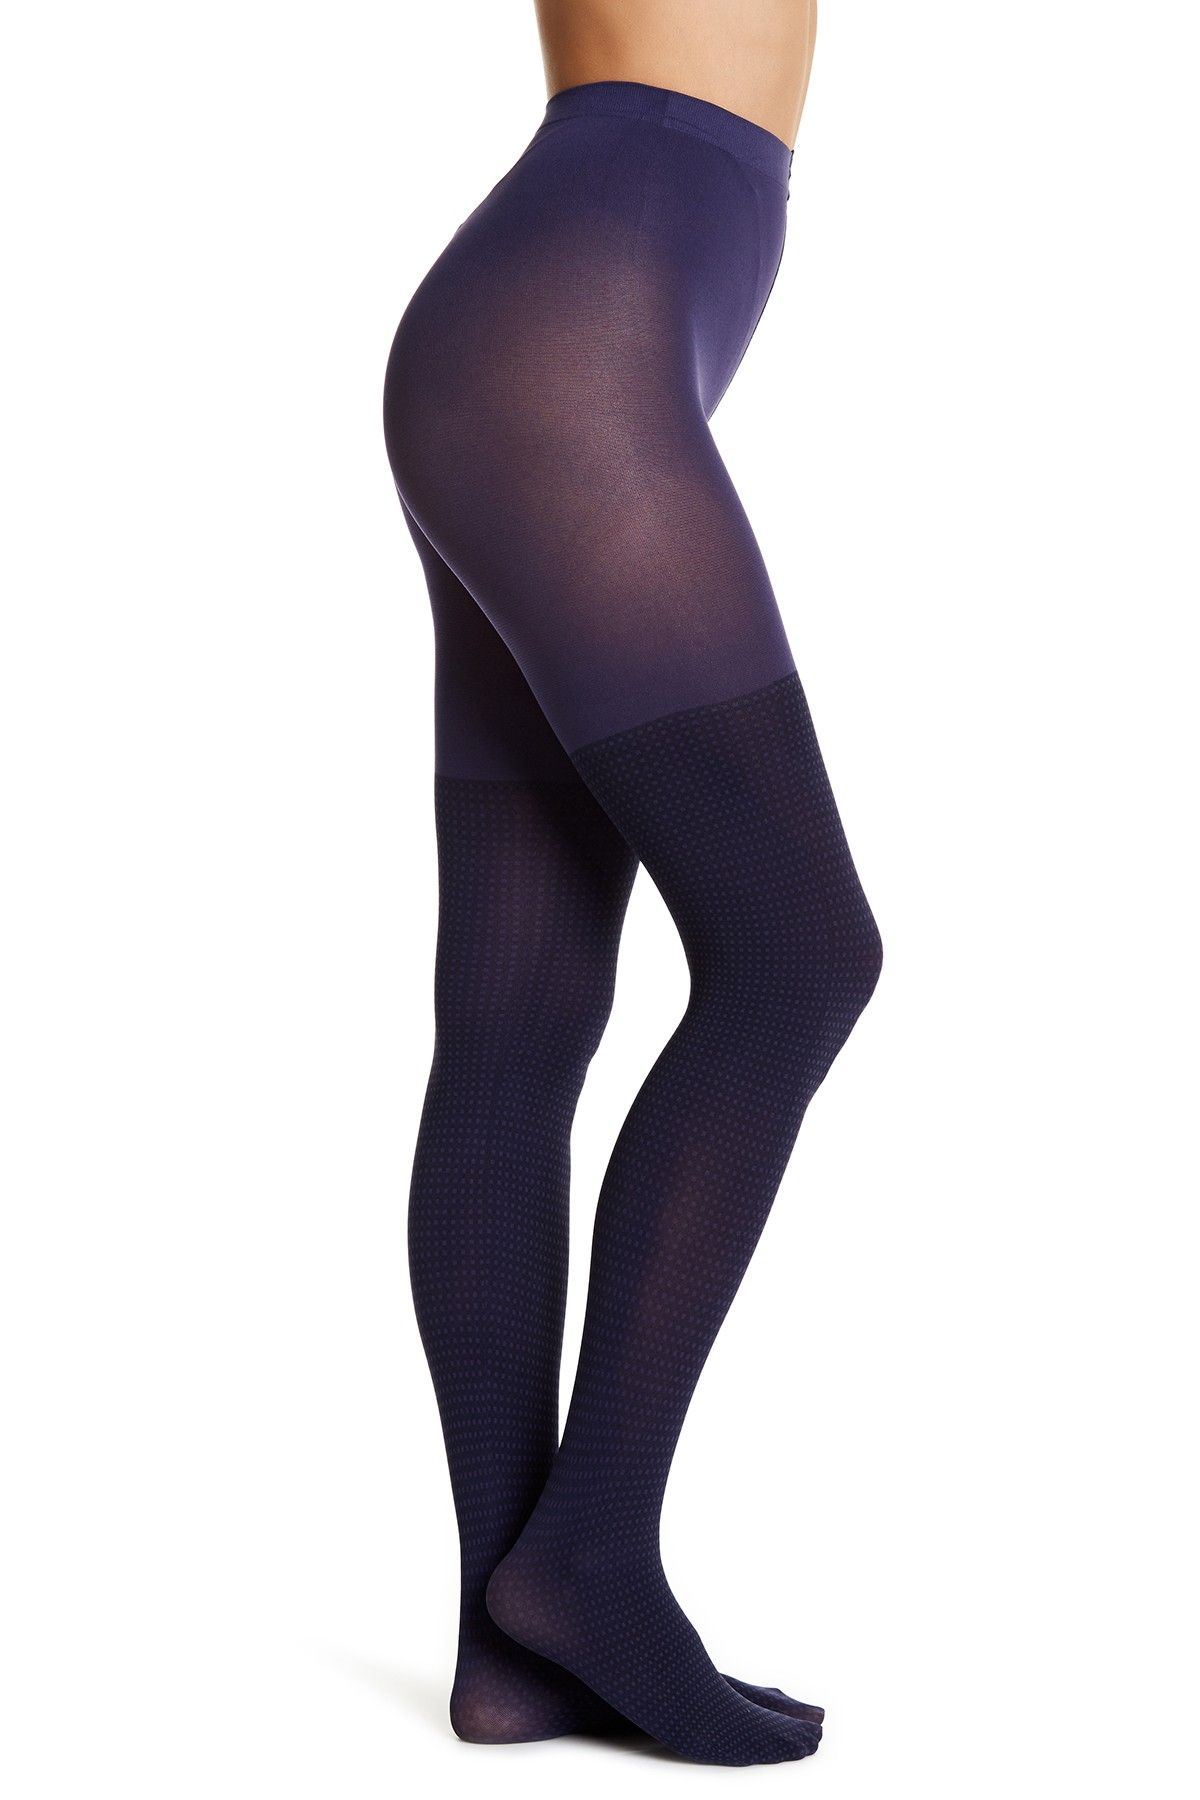 66c9c381e58b2 Gingham Tights (Plus Size Available)   Nordstrom Rack   Spanx ...